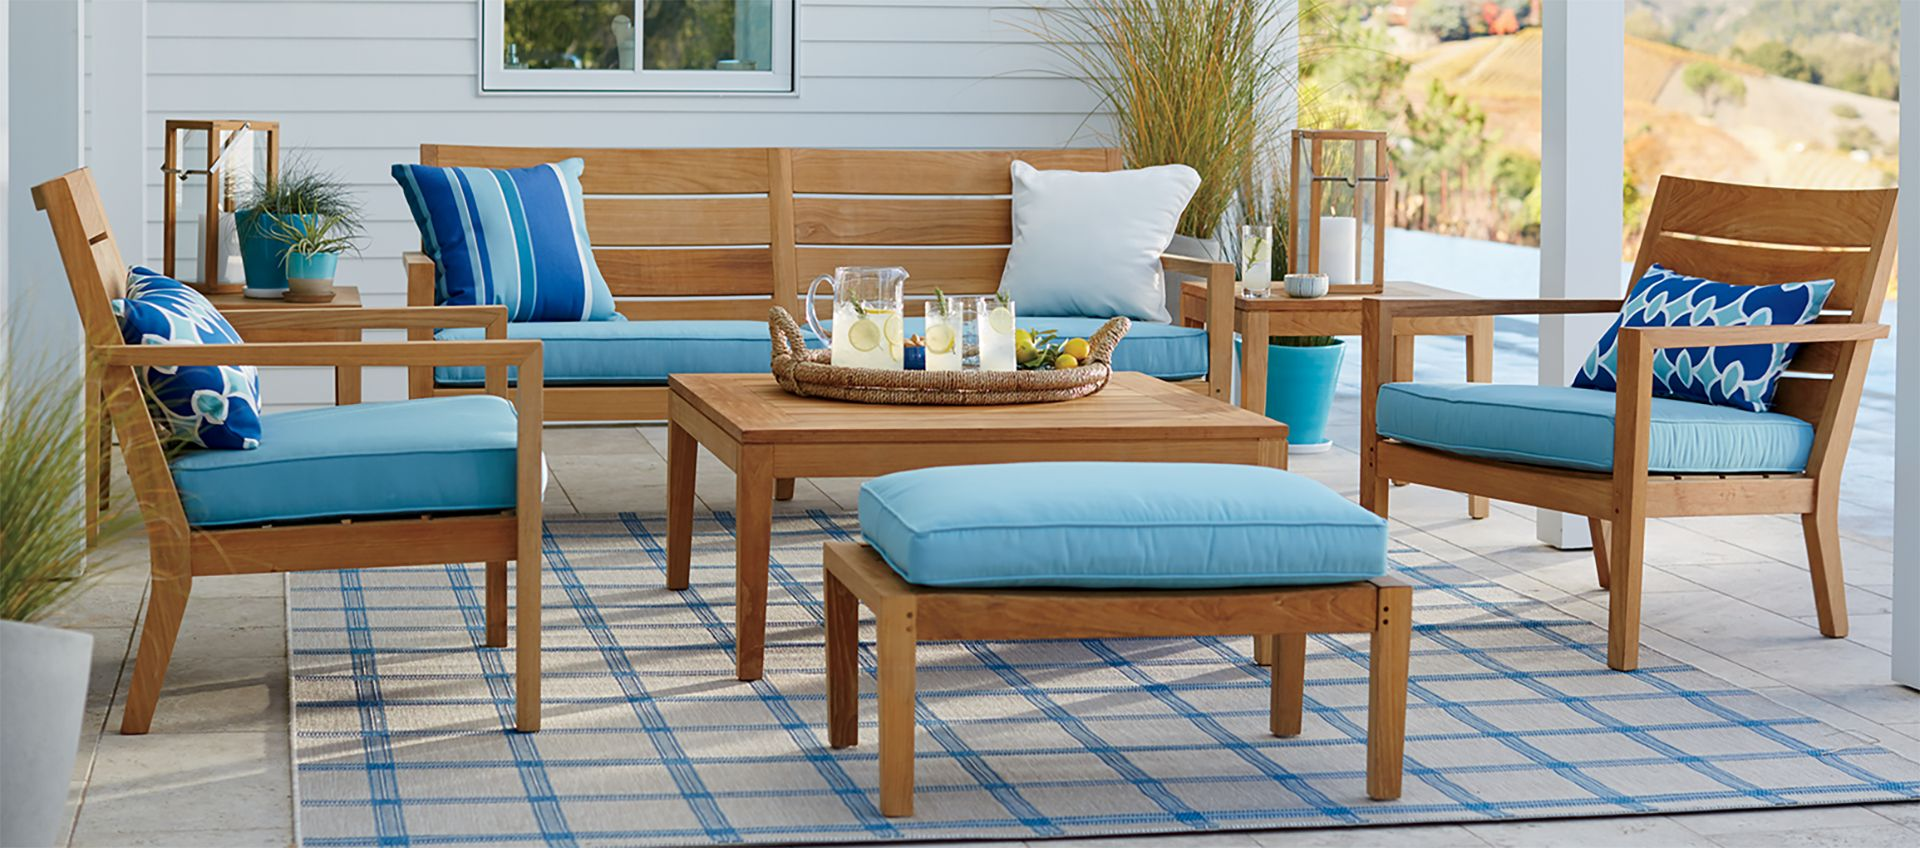 Environmentally Friendly Outdoor Furniture | Crate and Barrel